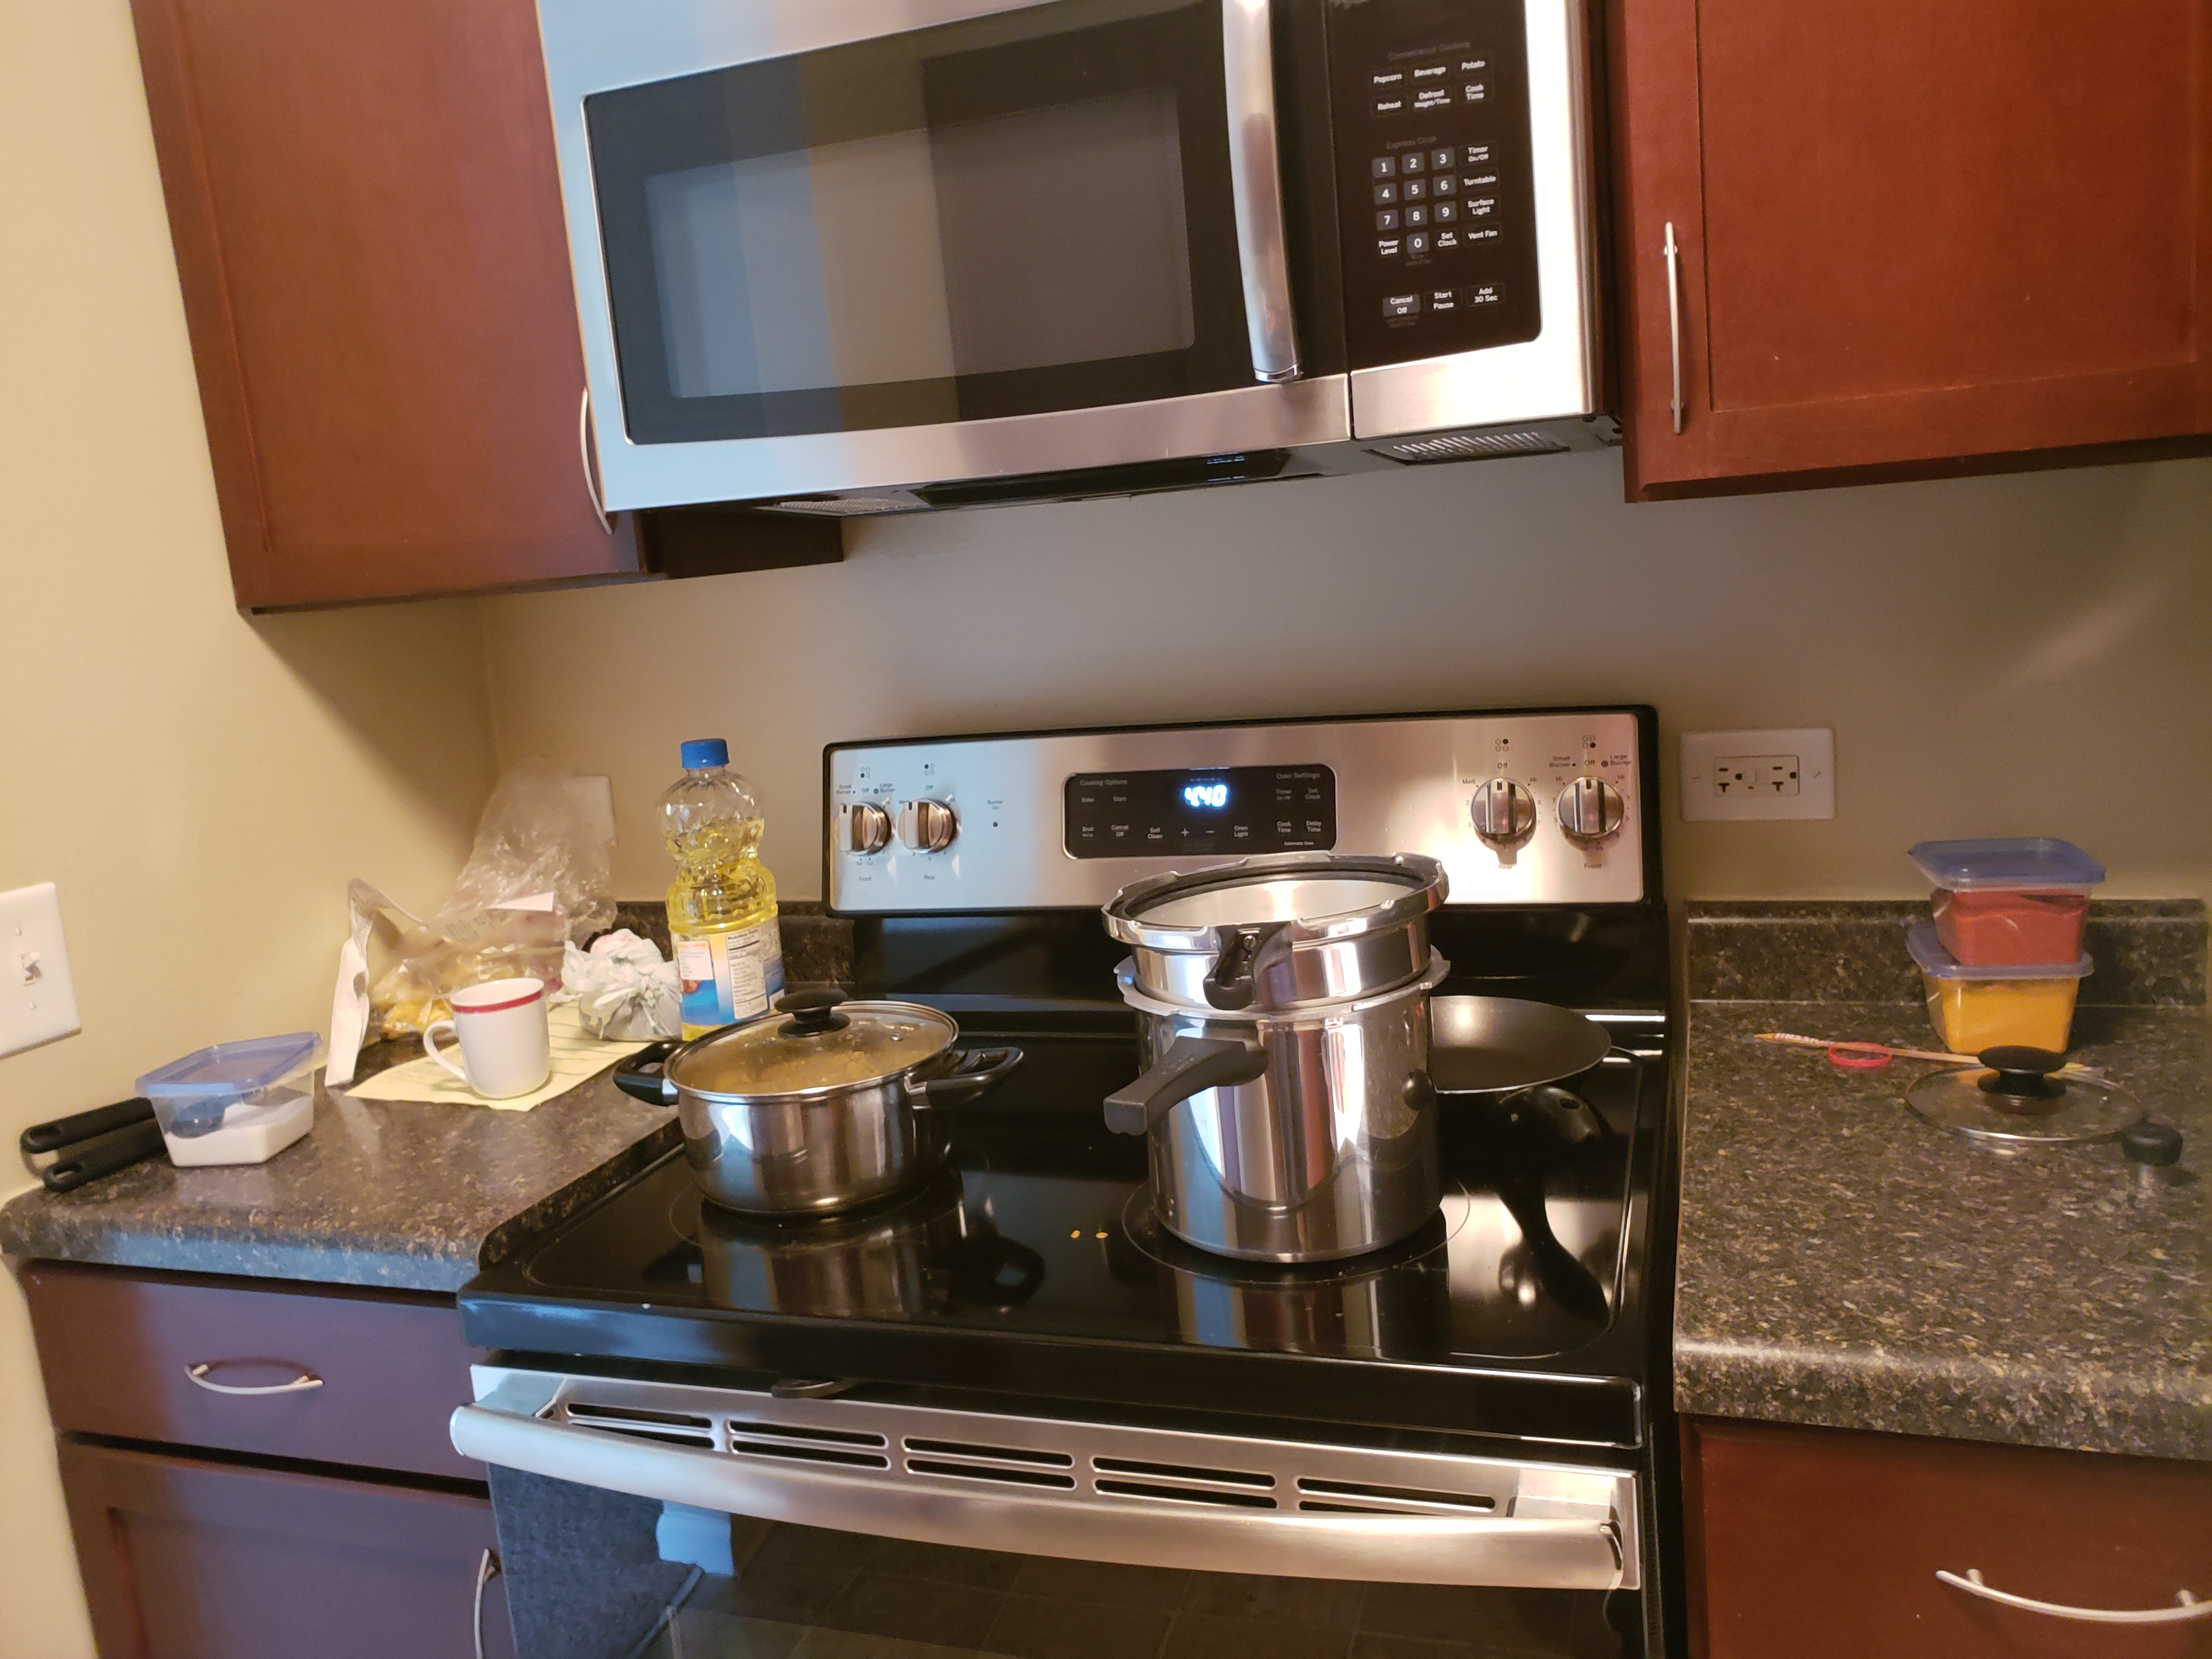 Shared room for rent in Lisle - Musmates com